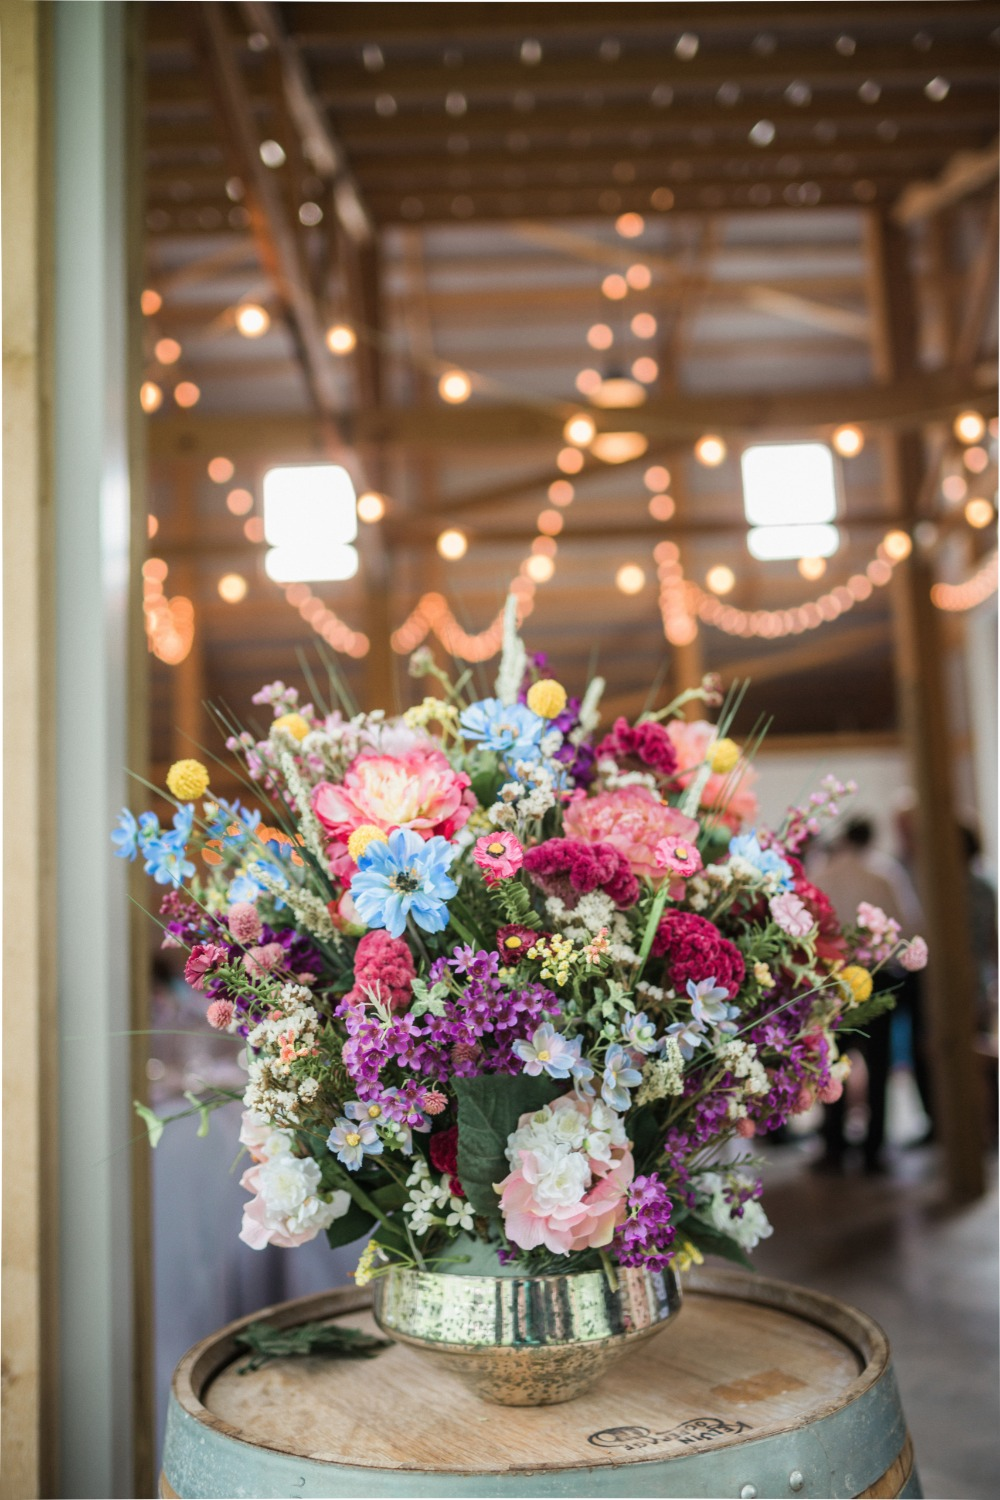 assorted wedding flowers for boho chic wedding decor